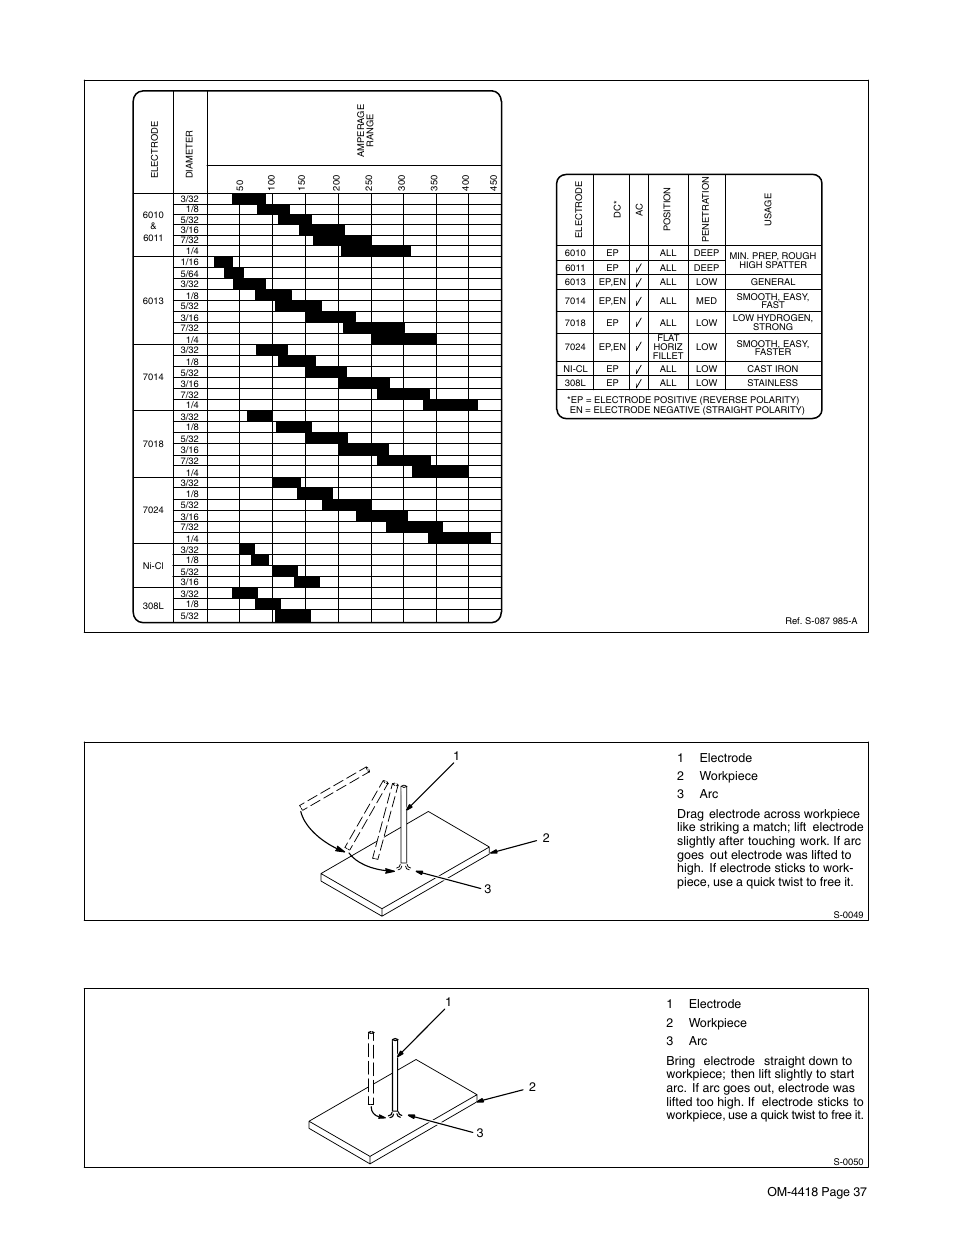 2. electrode and amperage selection chart, 3. striking an